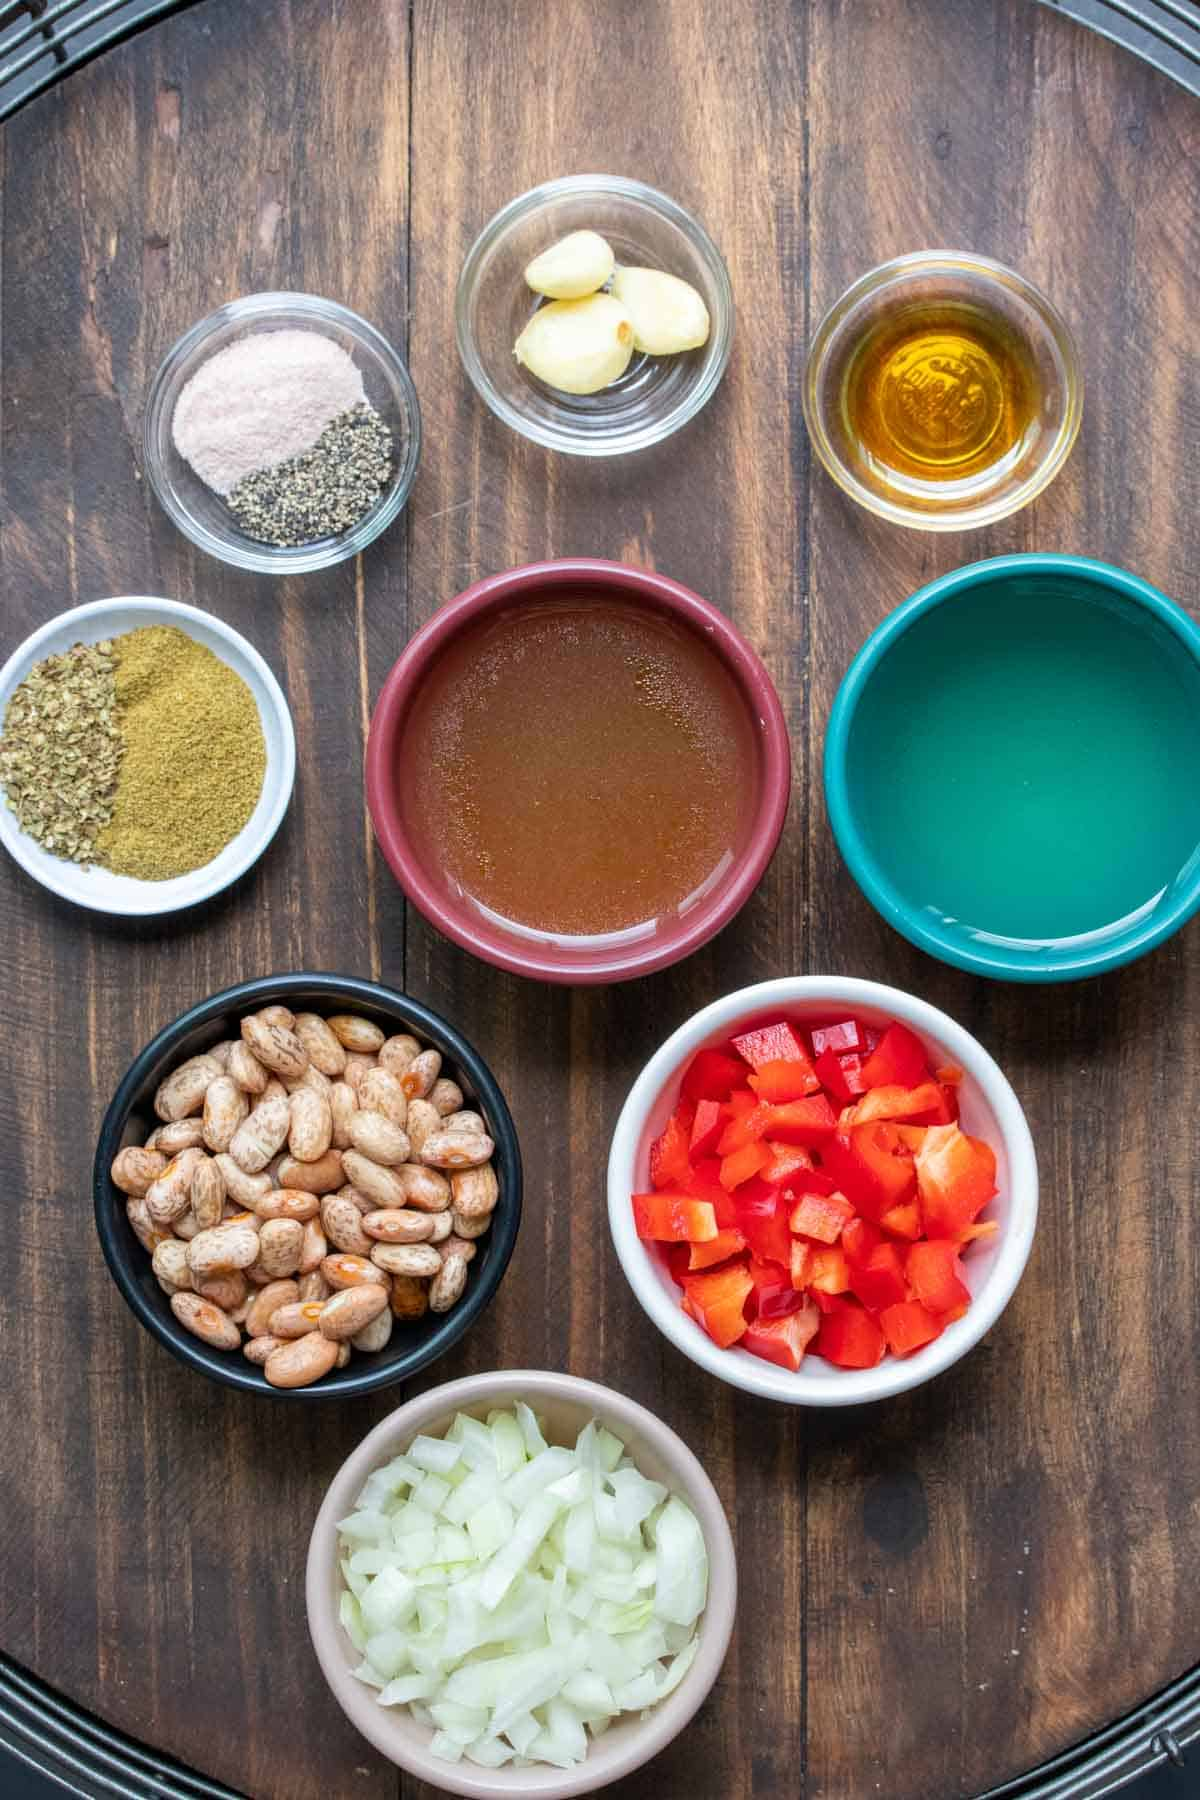 Different colored bowls filled with ingredients to make homemade pinto beans